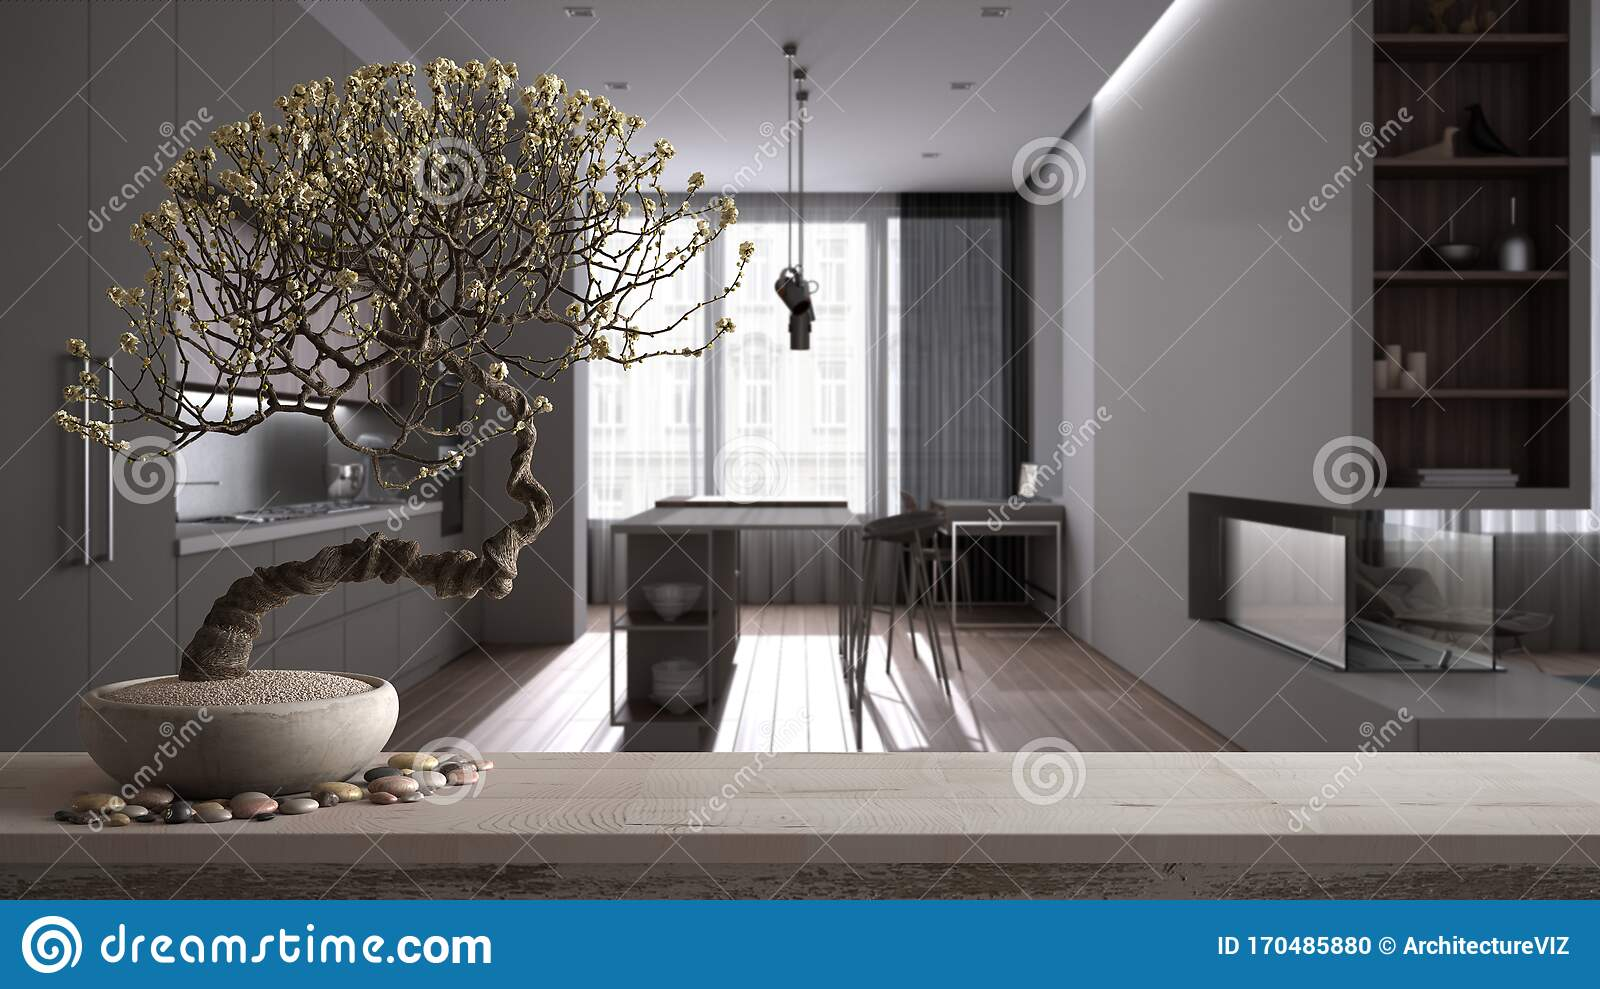 Zen Interior With Potted Bamboo Plant Natural Interior Design Concept Modern Luxury White And Wooden Kitchen Dining Room With Stock Illustration Illustration Of Modern Bush 170485880